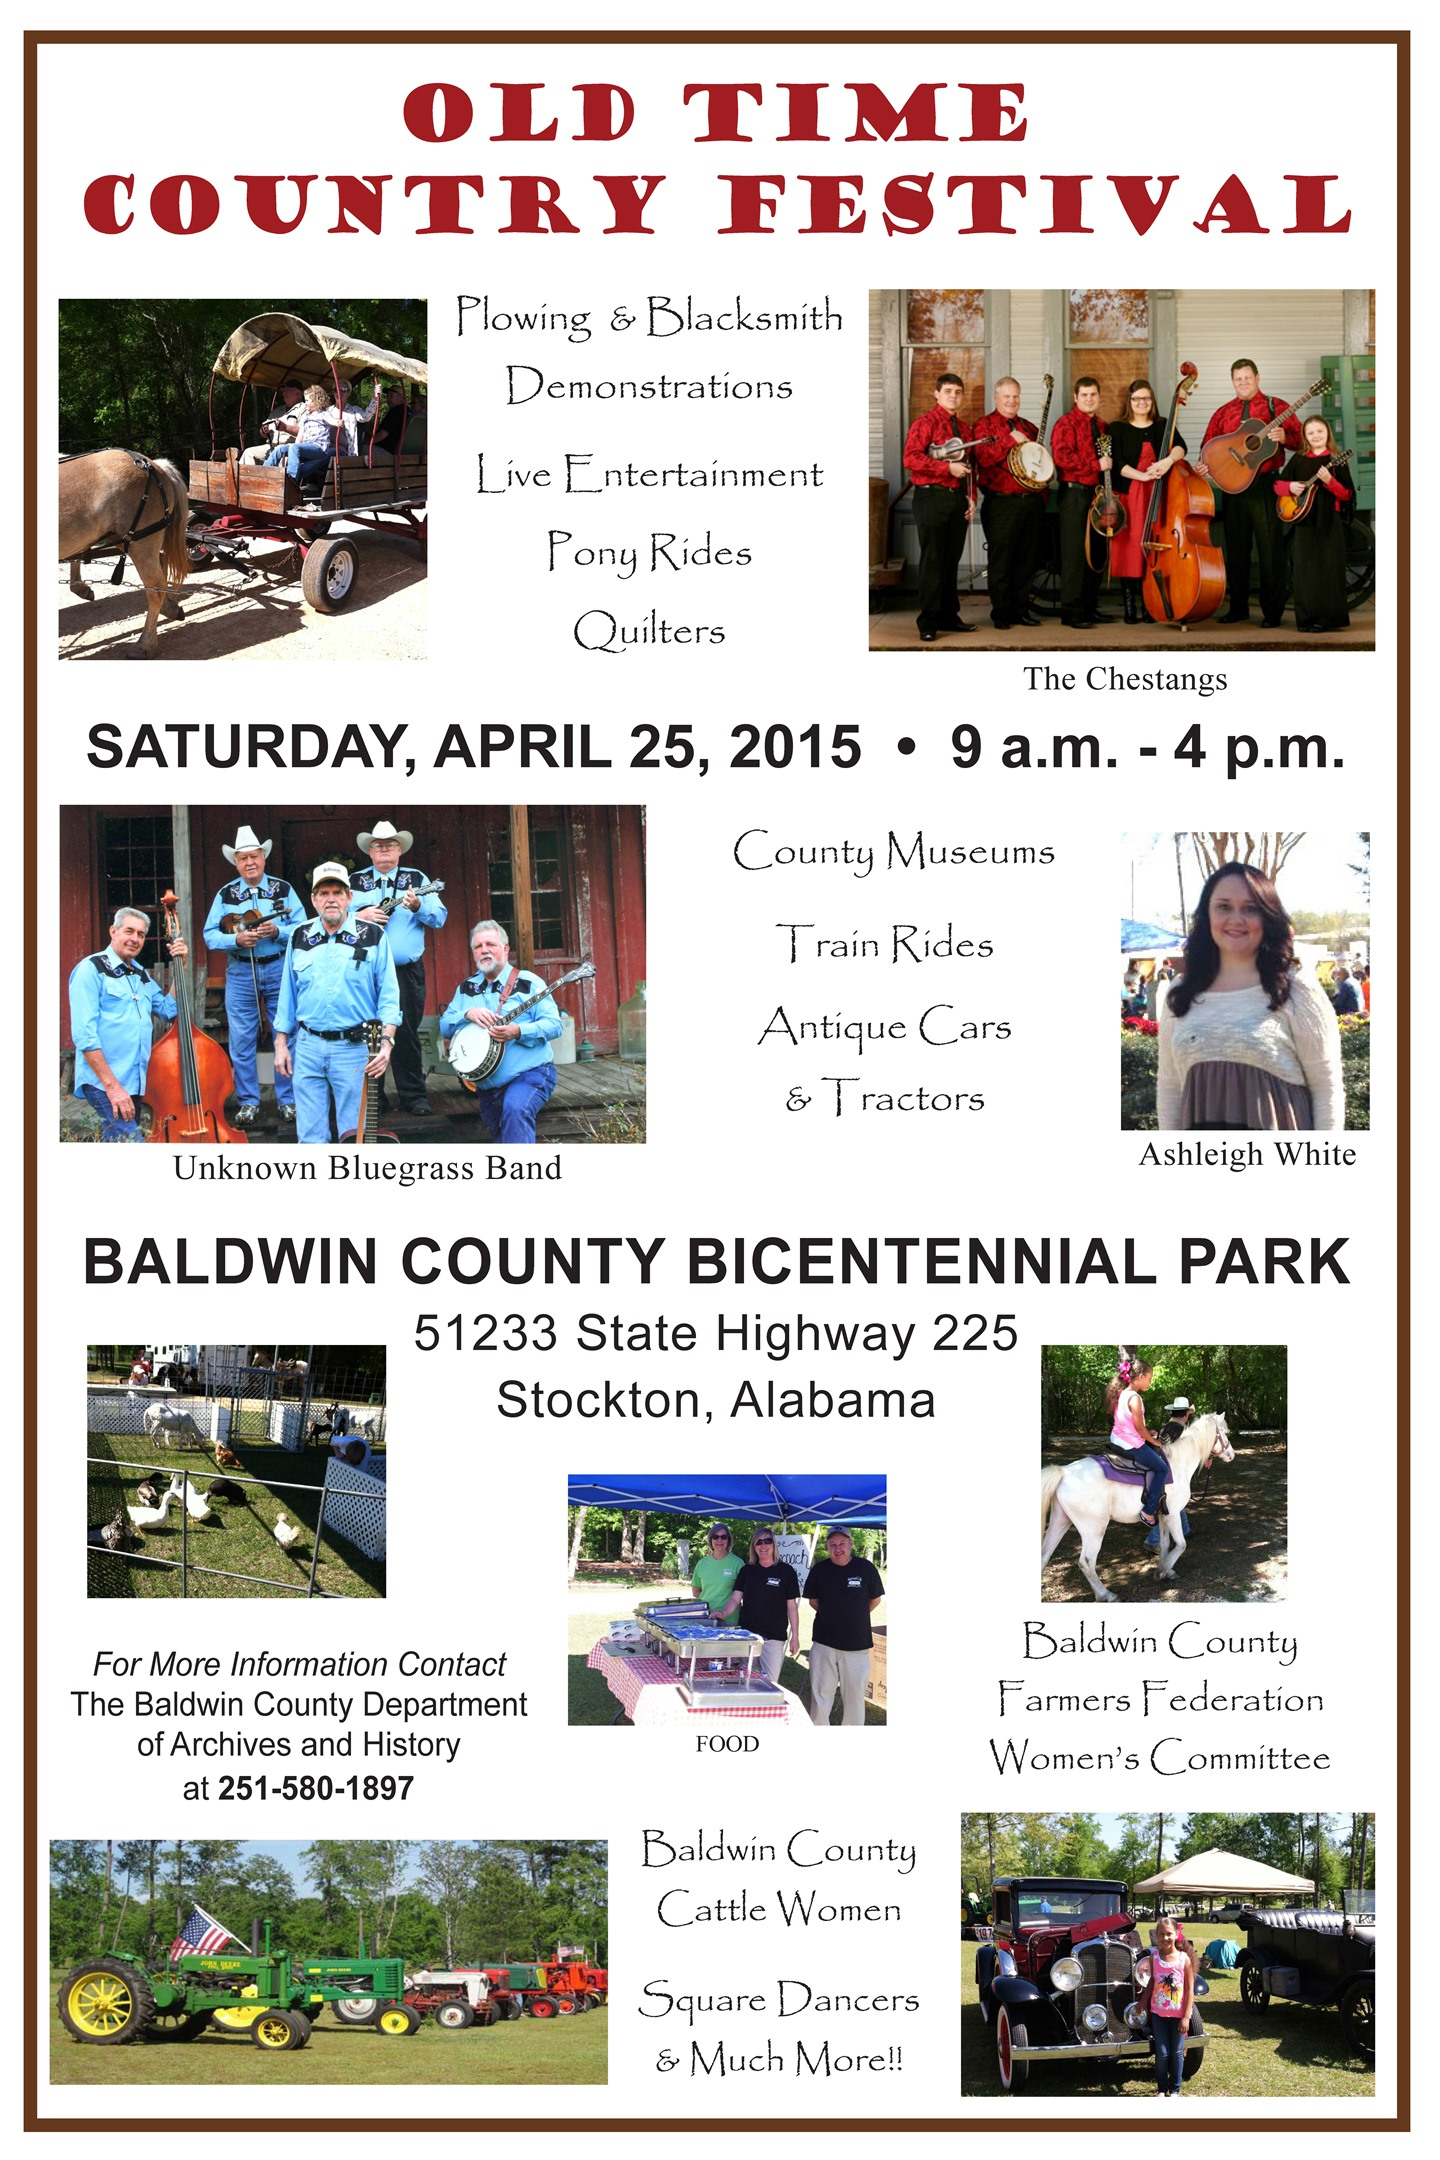 Alabama baldwin county stockton -  Of Archives And History Will Be Sponsoring The 5th Annual Old Time Country Festival At The Baldwin County Bicentennial Park In Stockton Alabama